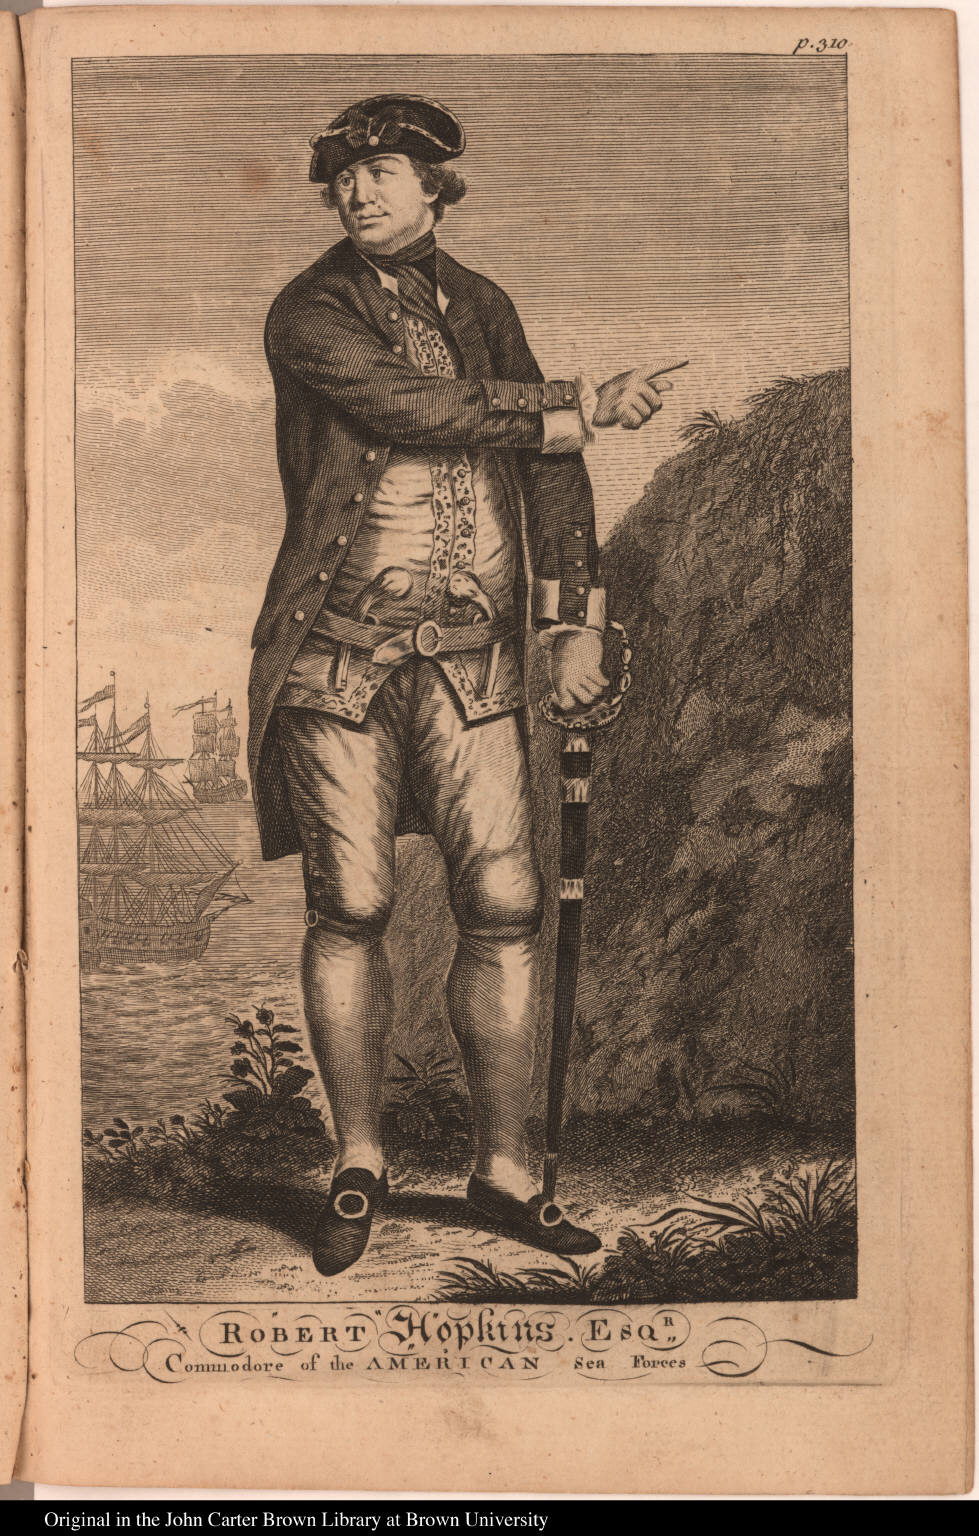 Robert Hopkins. Esqr: Commodore of the American Sea Forces